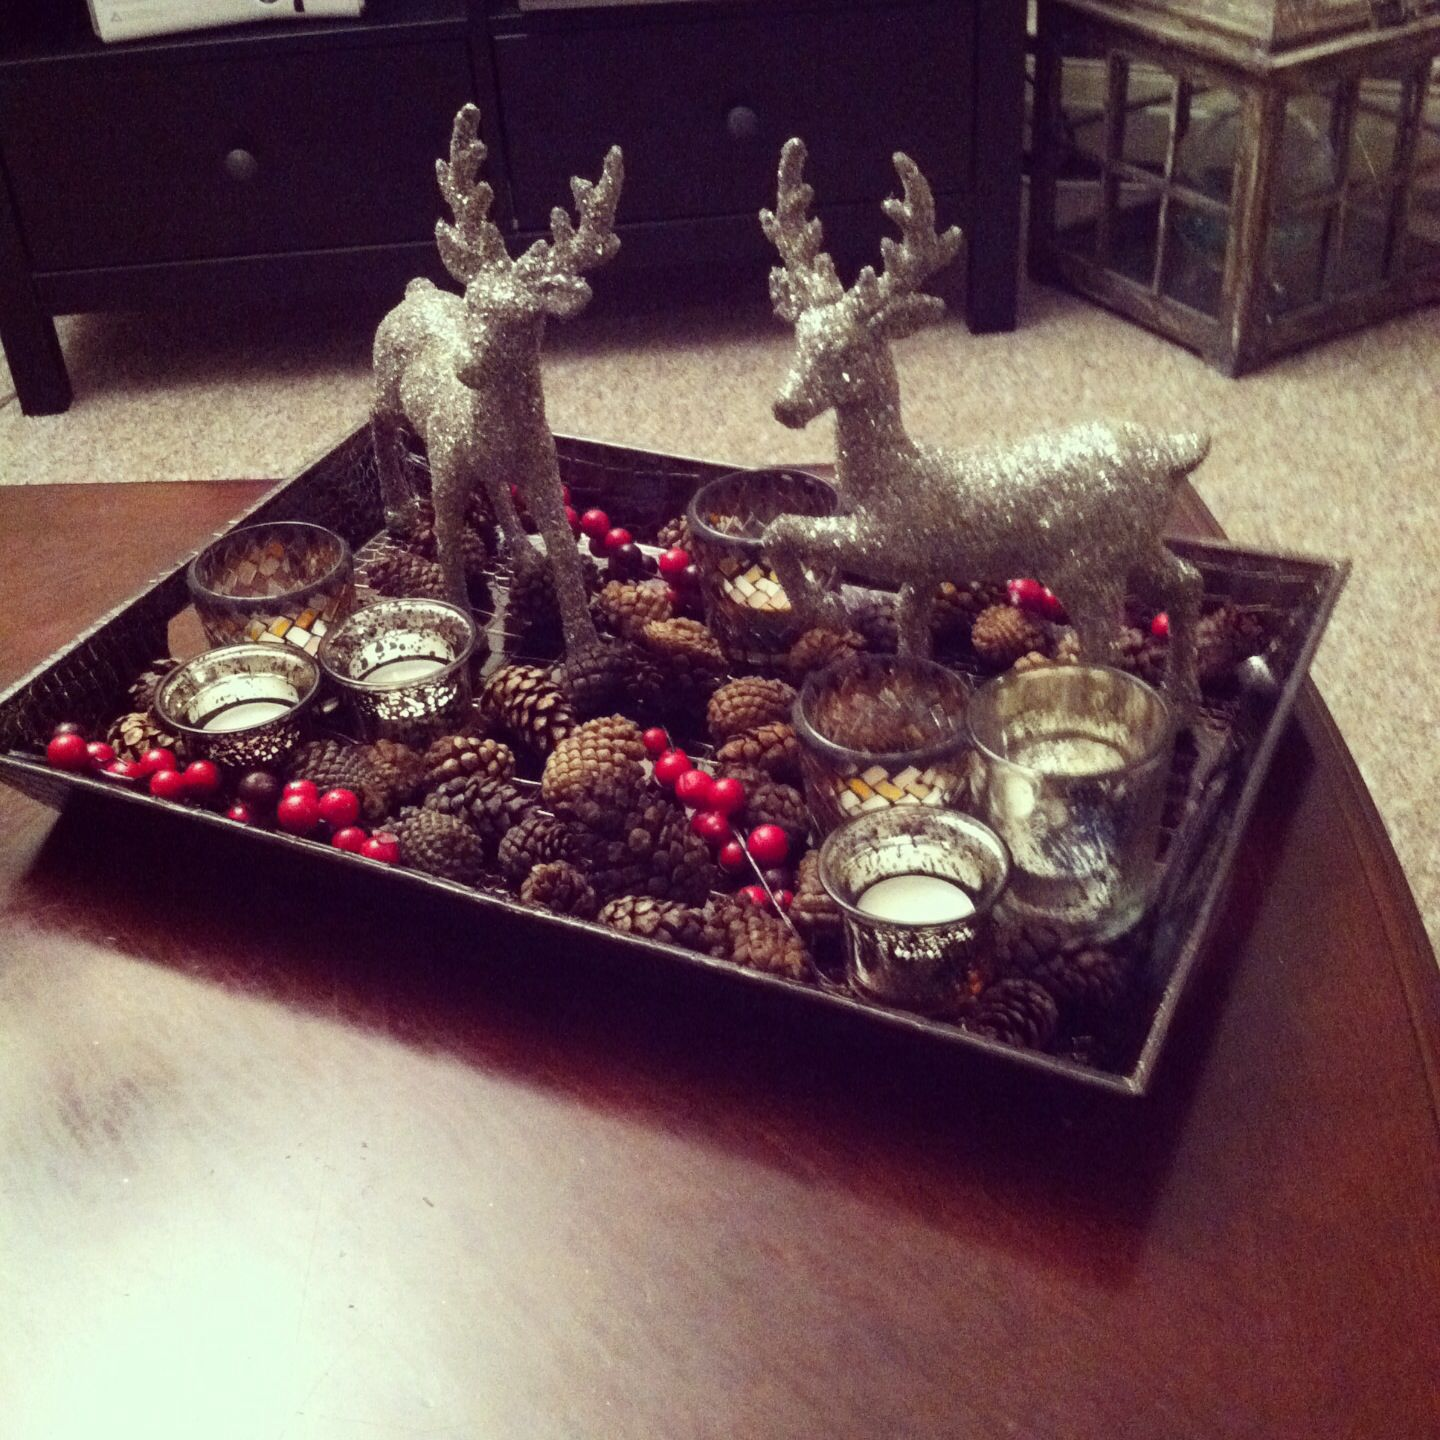 Christmas Coffee Table Decoration If Only I Didn T Have A Toddler Mischievous Dogs Christmas Coffee Table Decor Christmas Tray Christmas Table Decorations